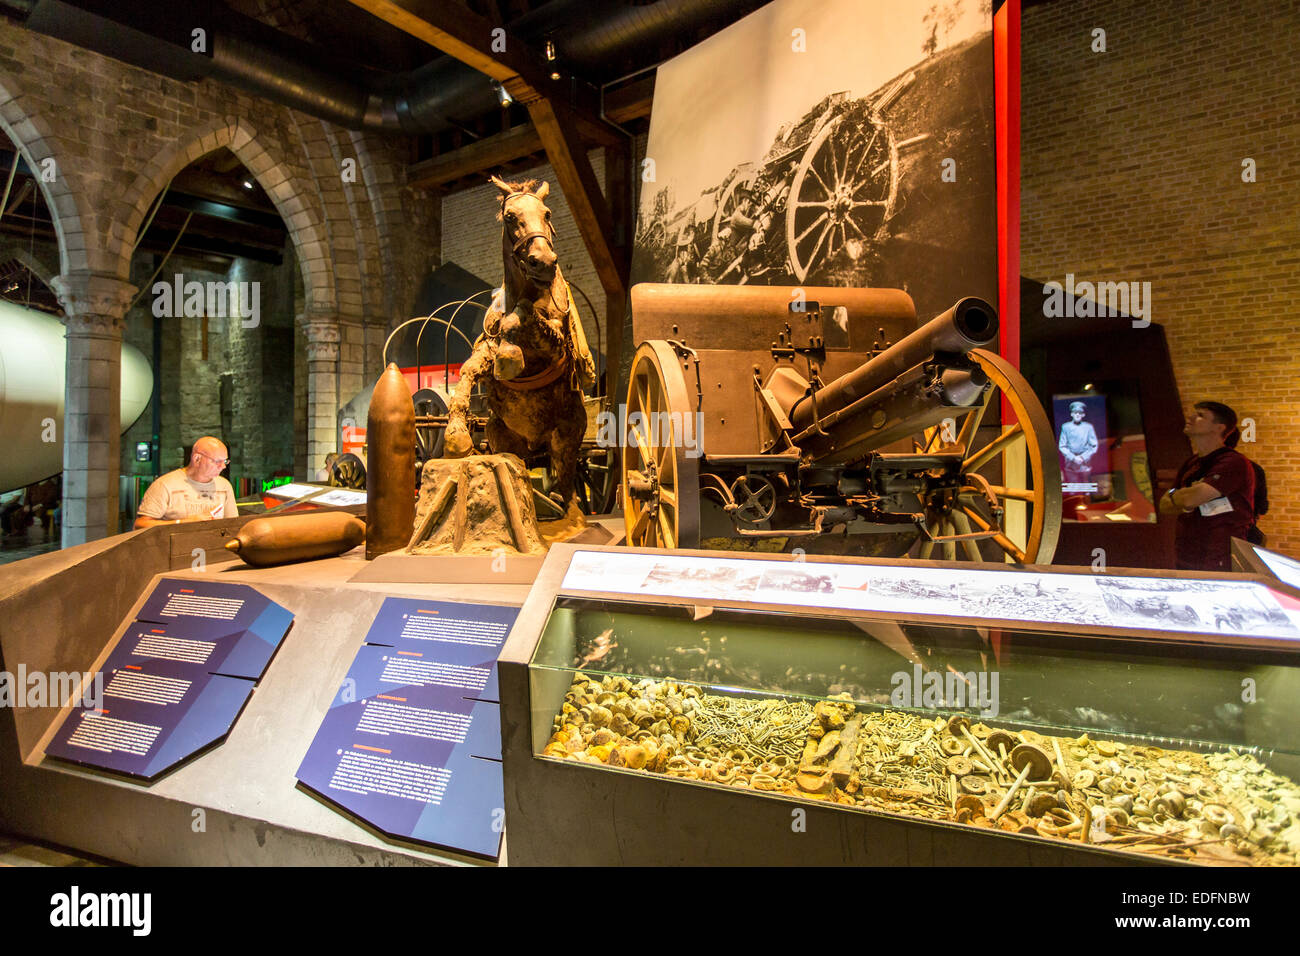 'In Flandern Fields' war museum, about World War I, in Ypres, in the 'Lakenhal' building, UNESCO - Stock Image